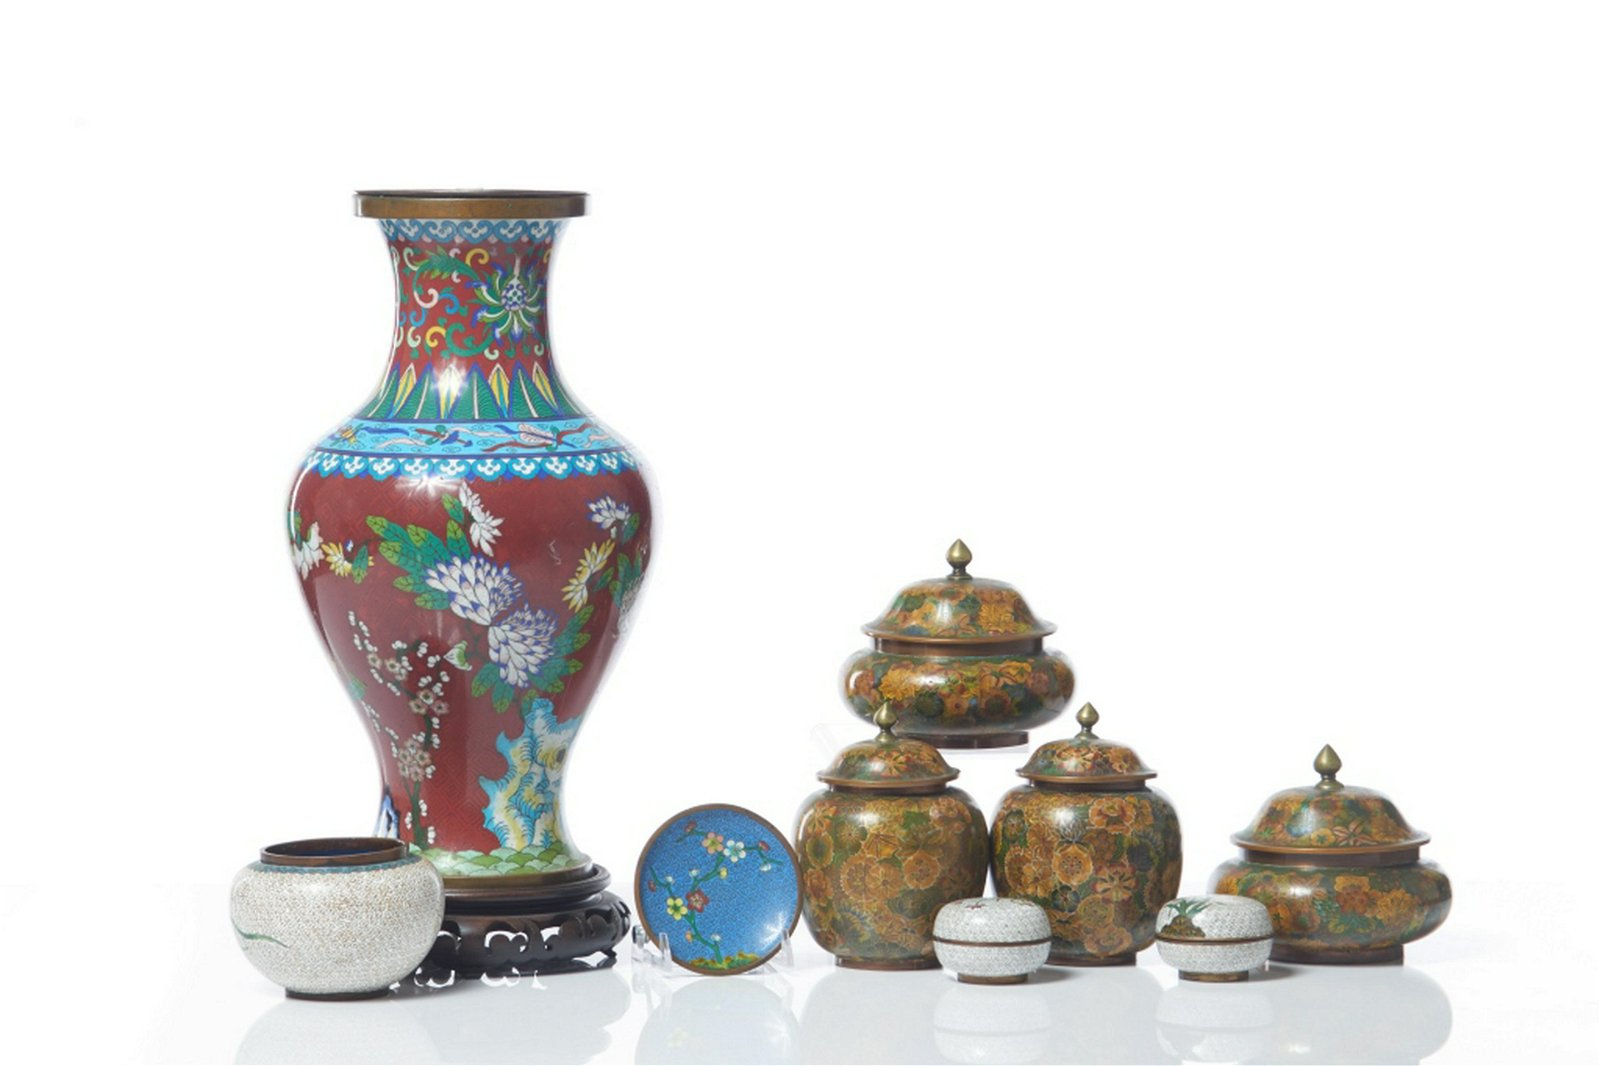 GROUP OF 9 CHINESE CLOISONNE ENAMELLED ITEMS